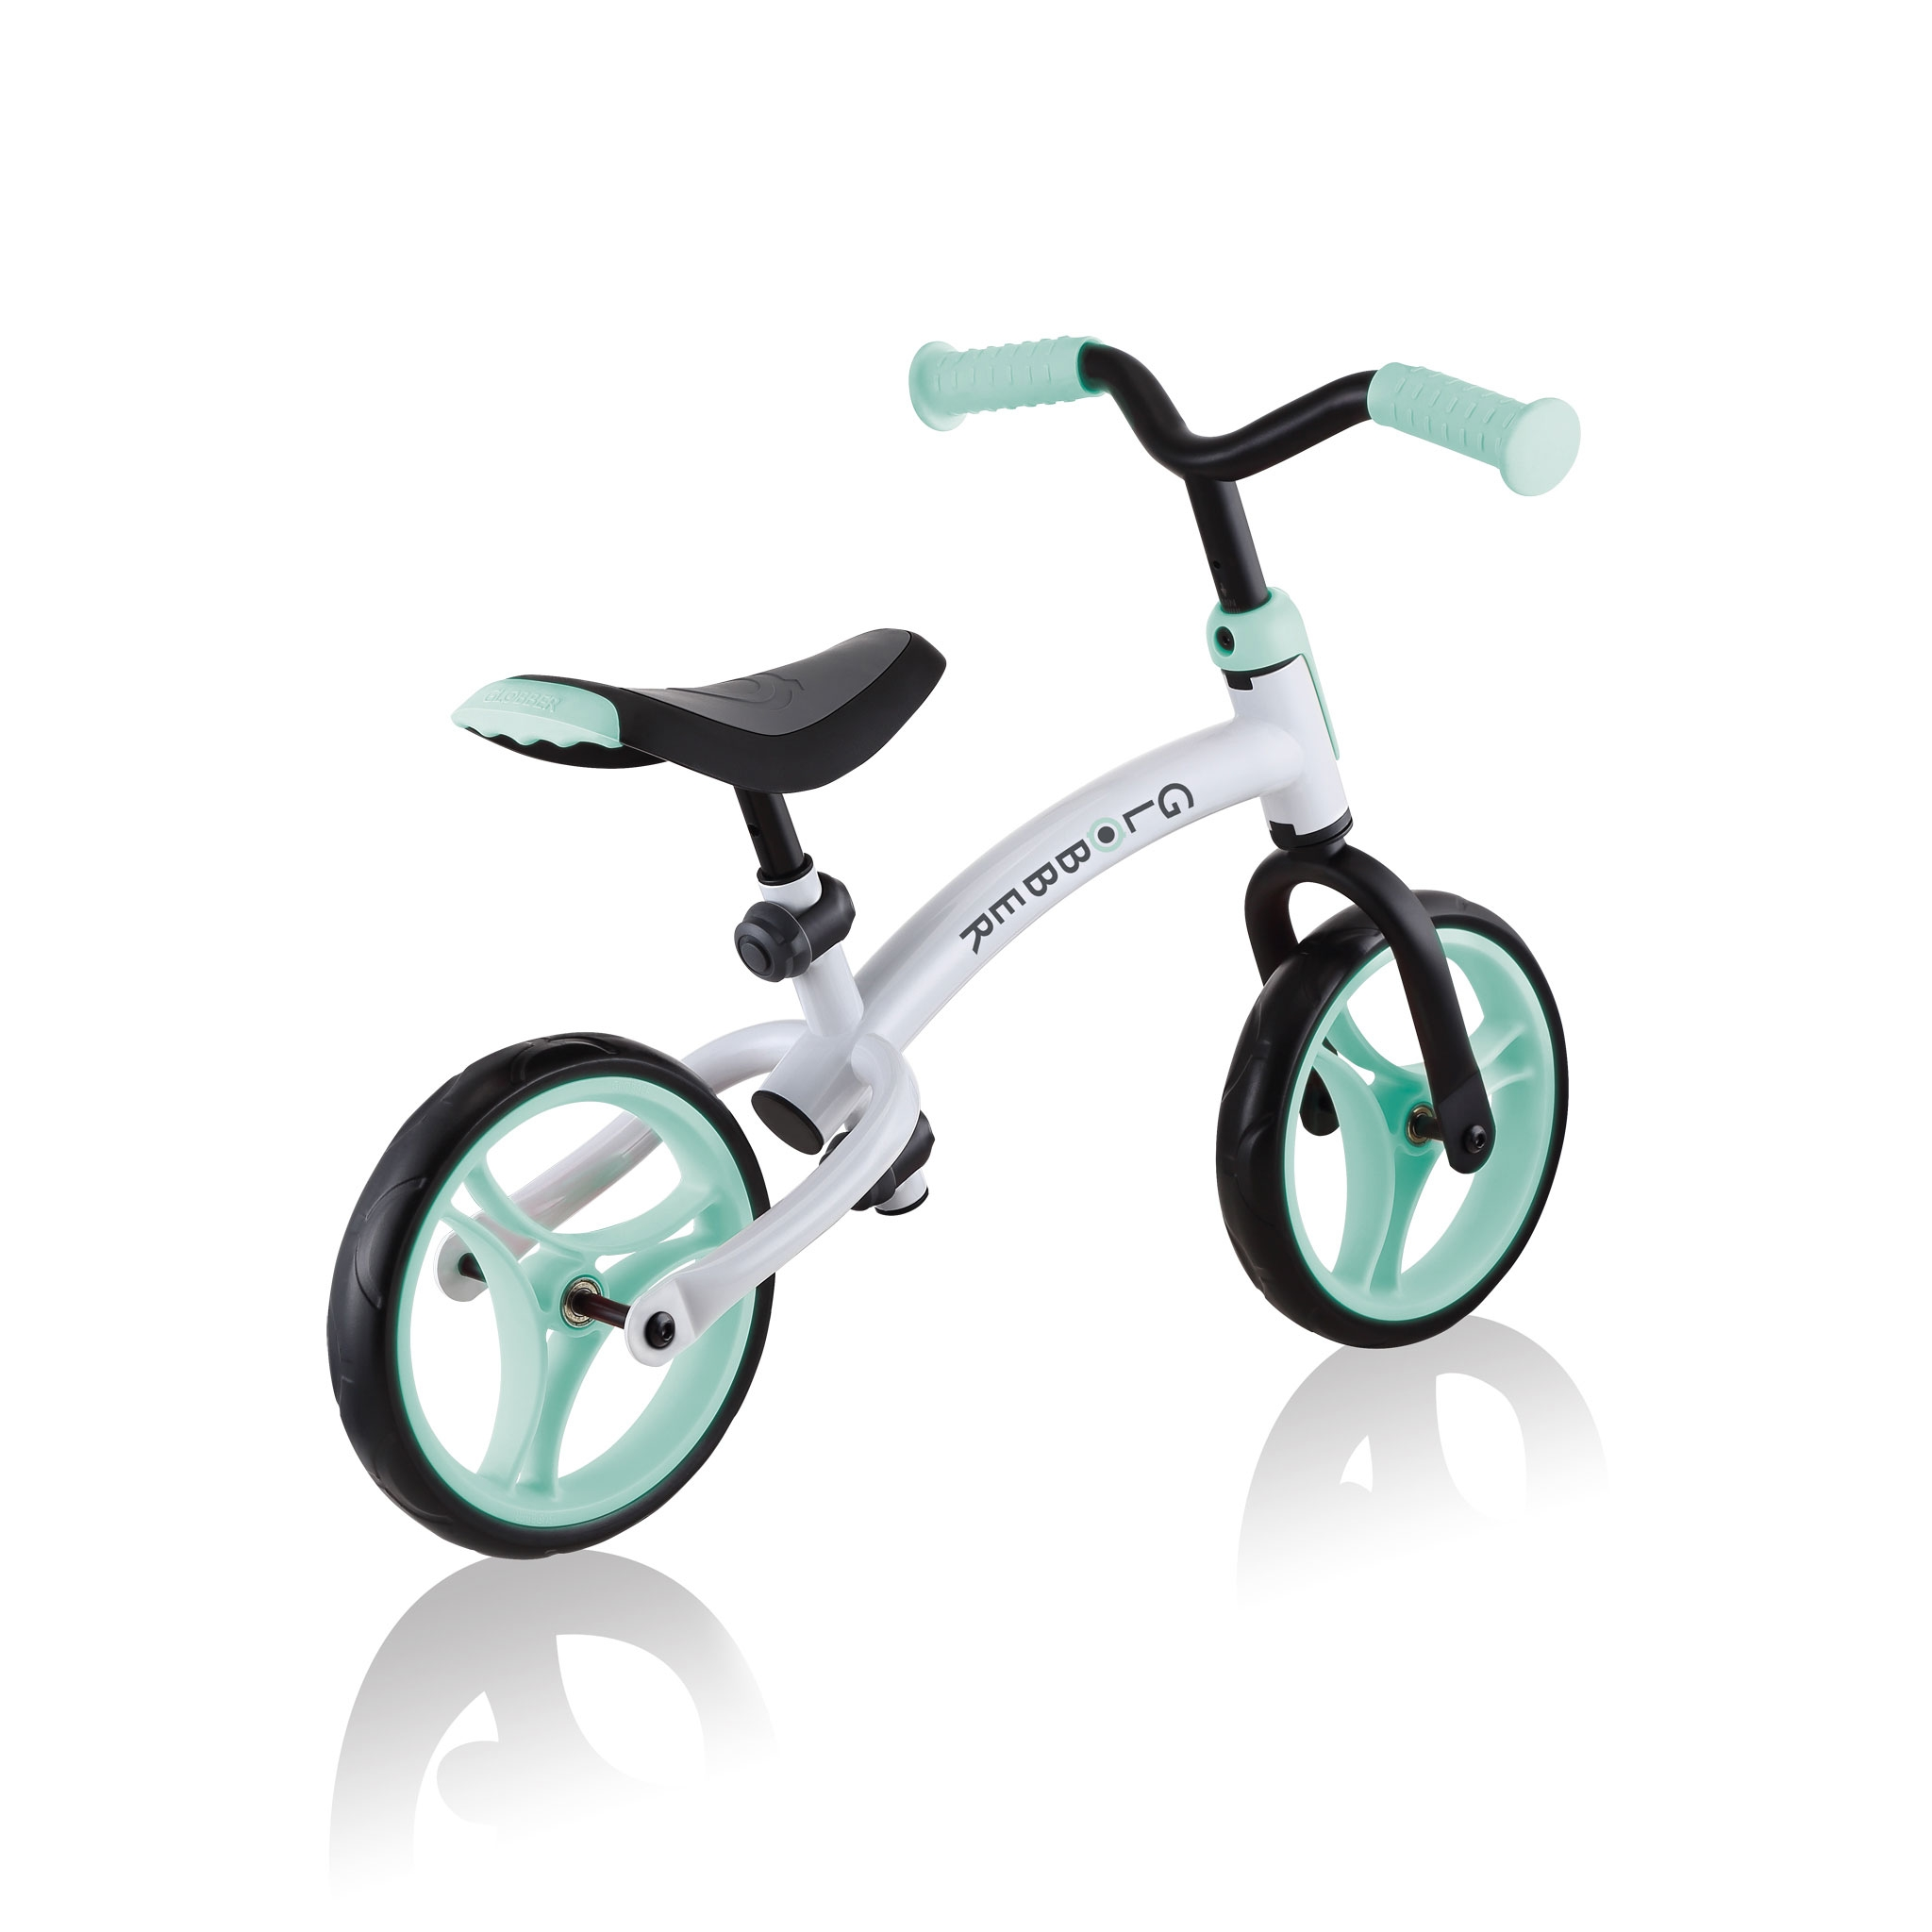 GO-BIKE-DUO-toddler-balance-bike-with-reversible-frame-transform-from-low-frame-position-to-high-frame-position_mint 5